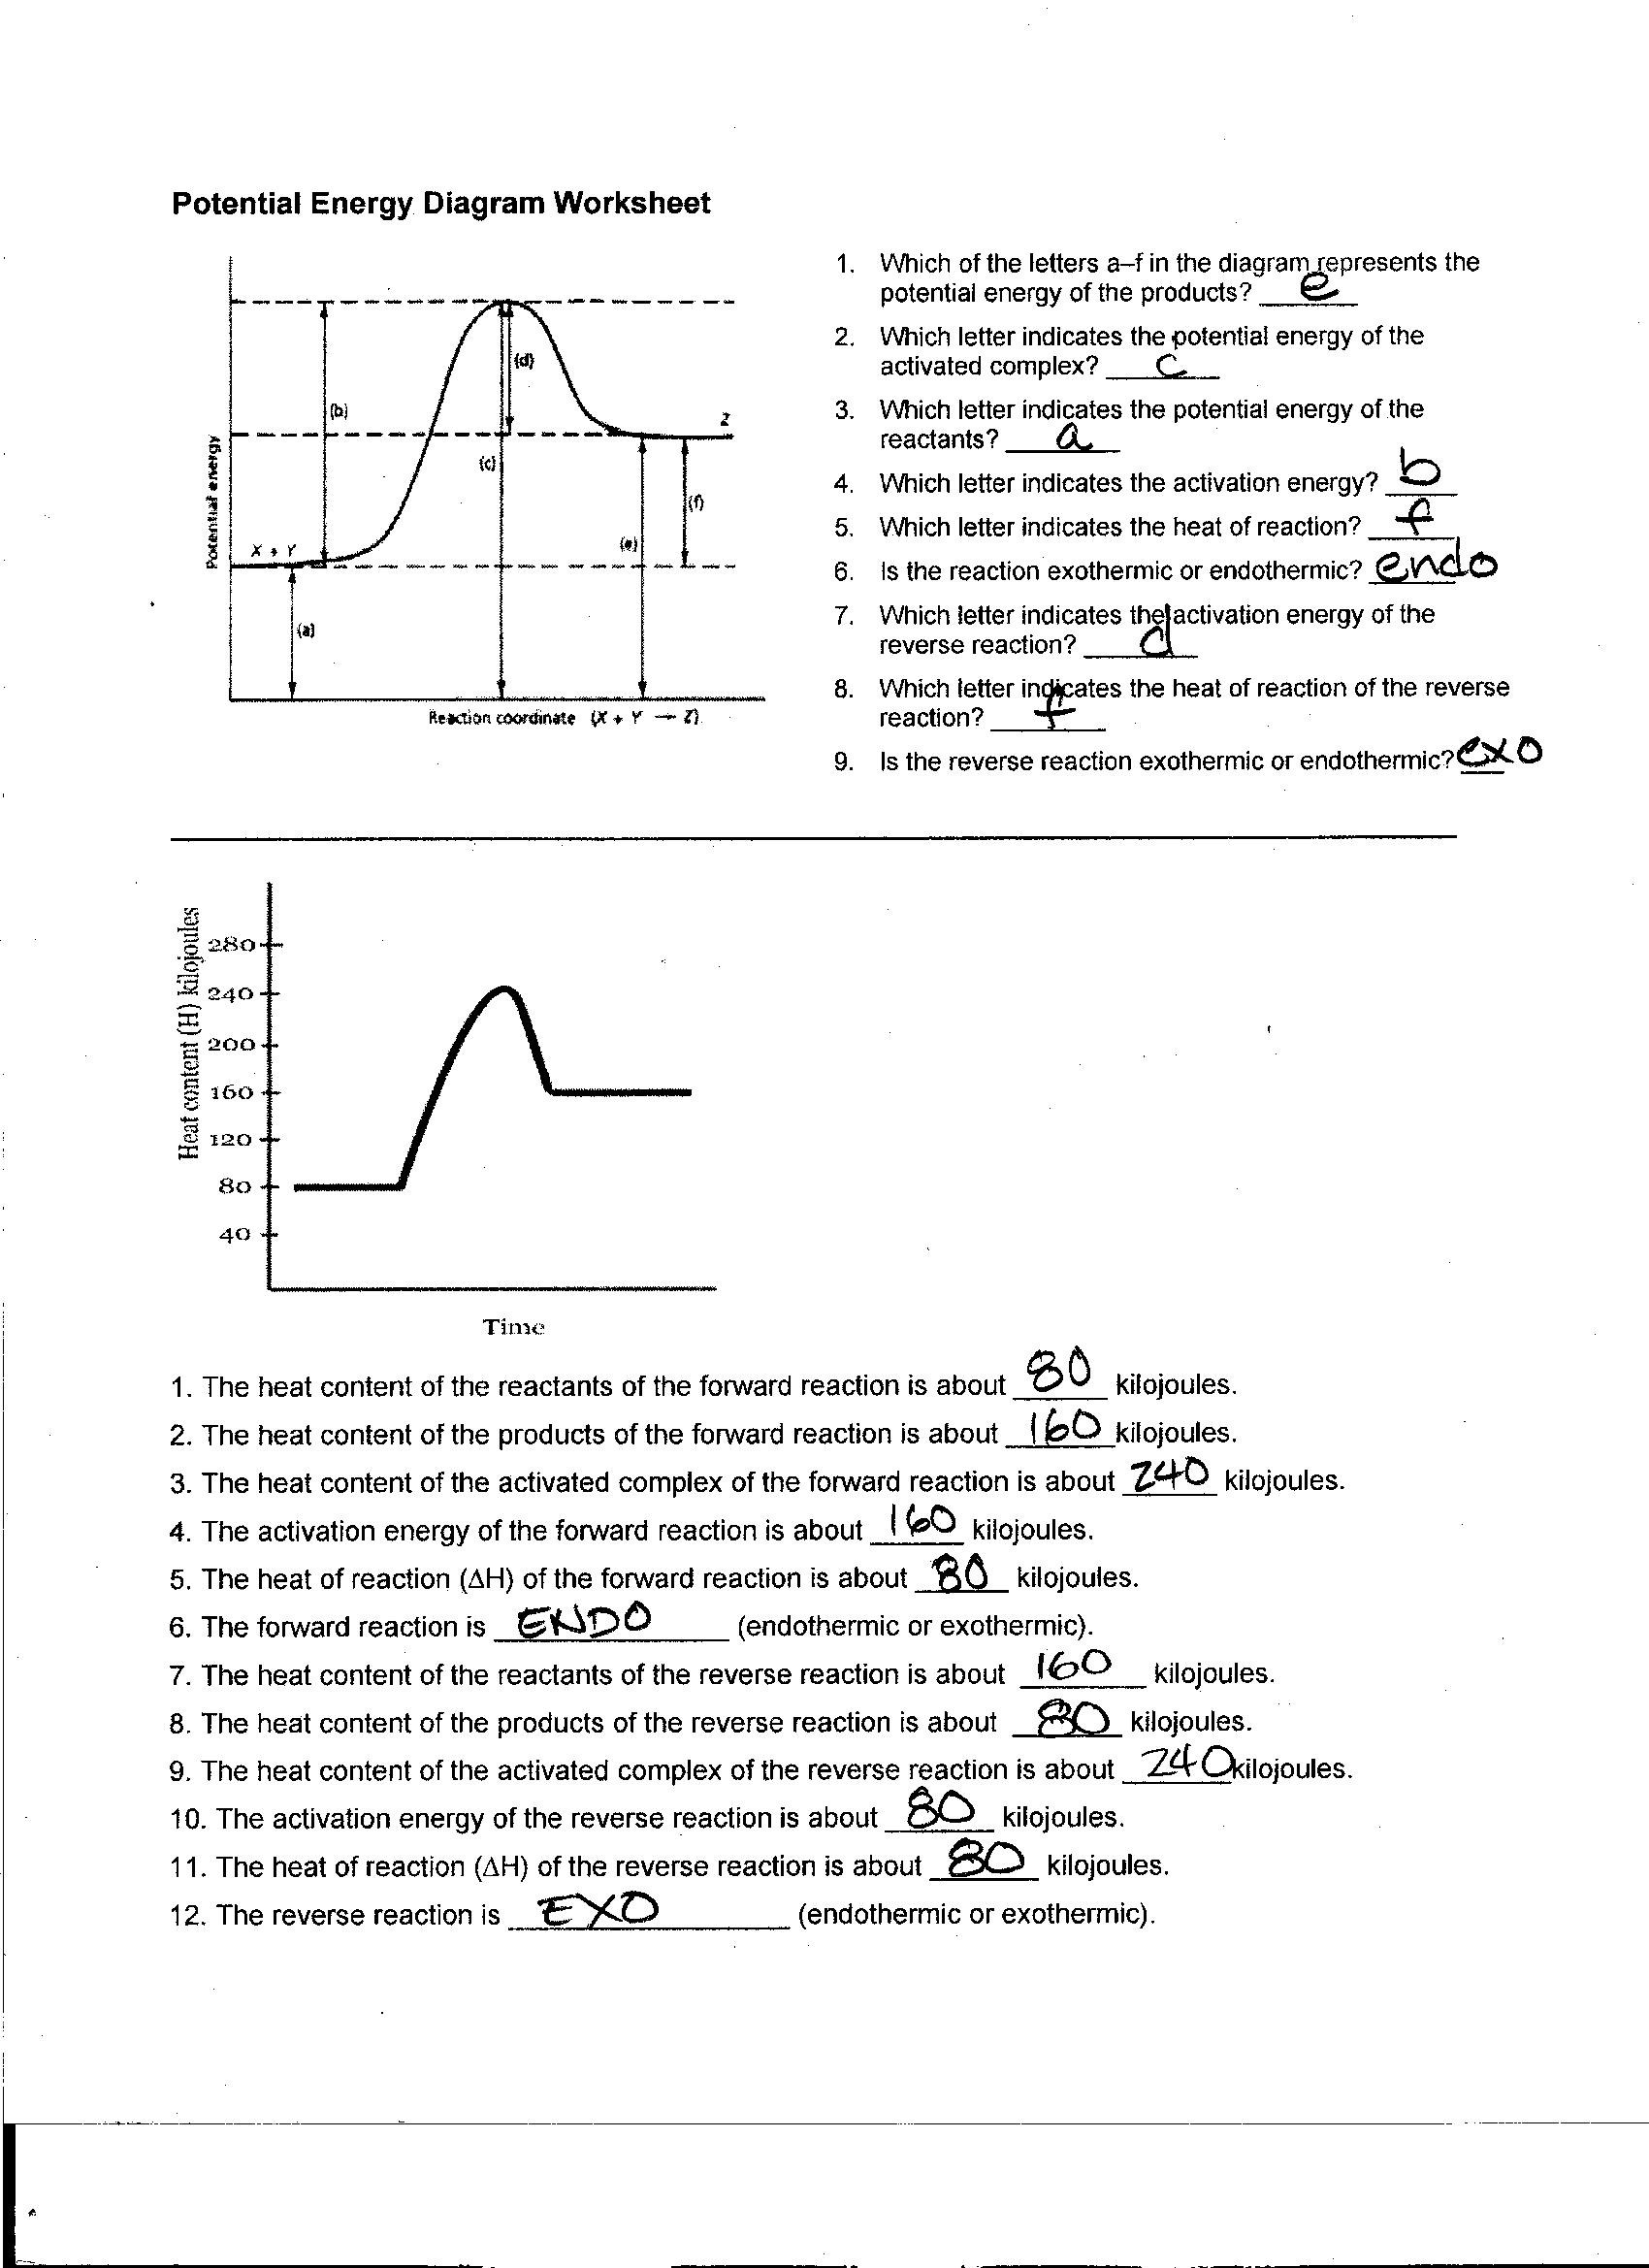 potential energy diagram activation wiring for photocell switch worksheet reaction rate grass fedjp